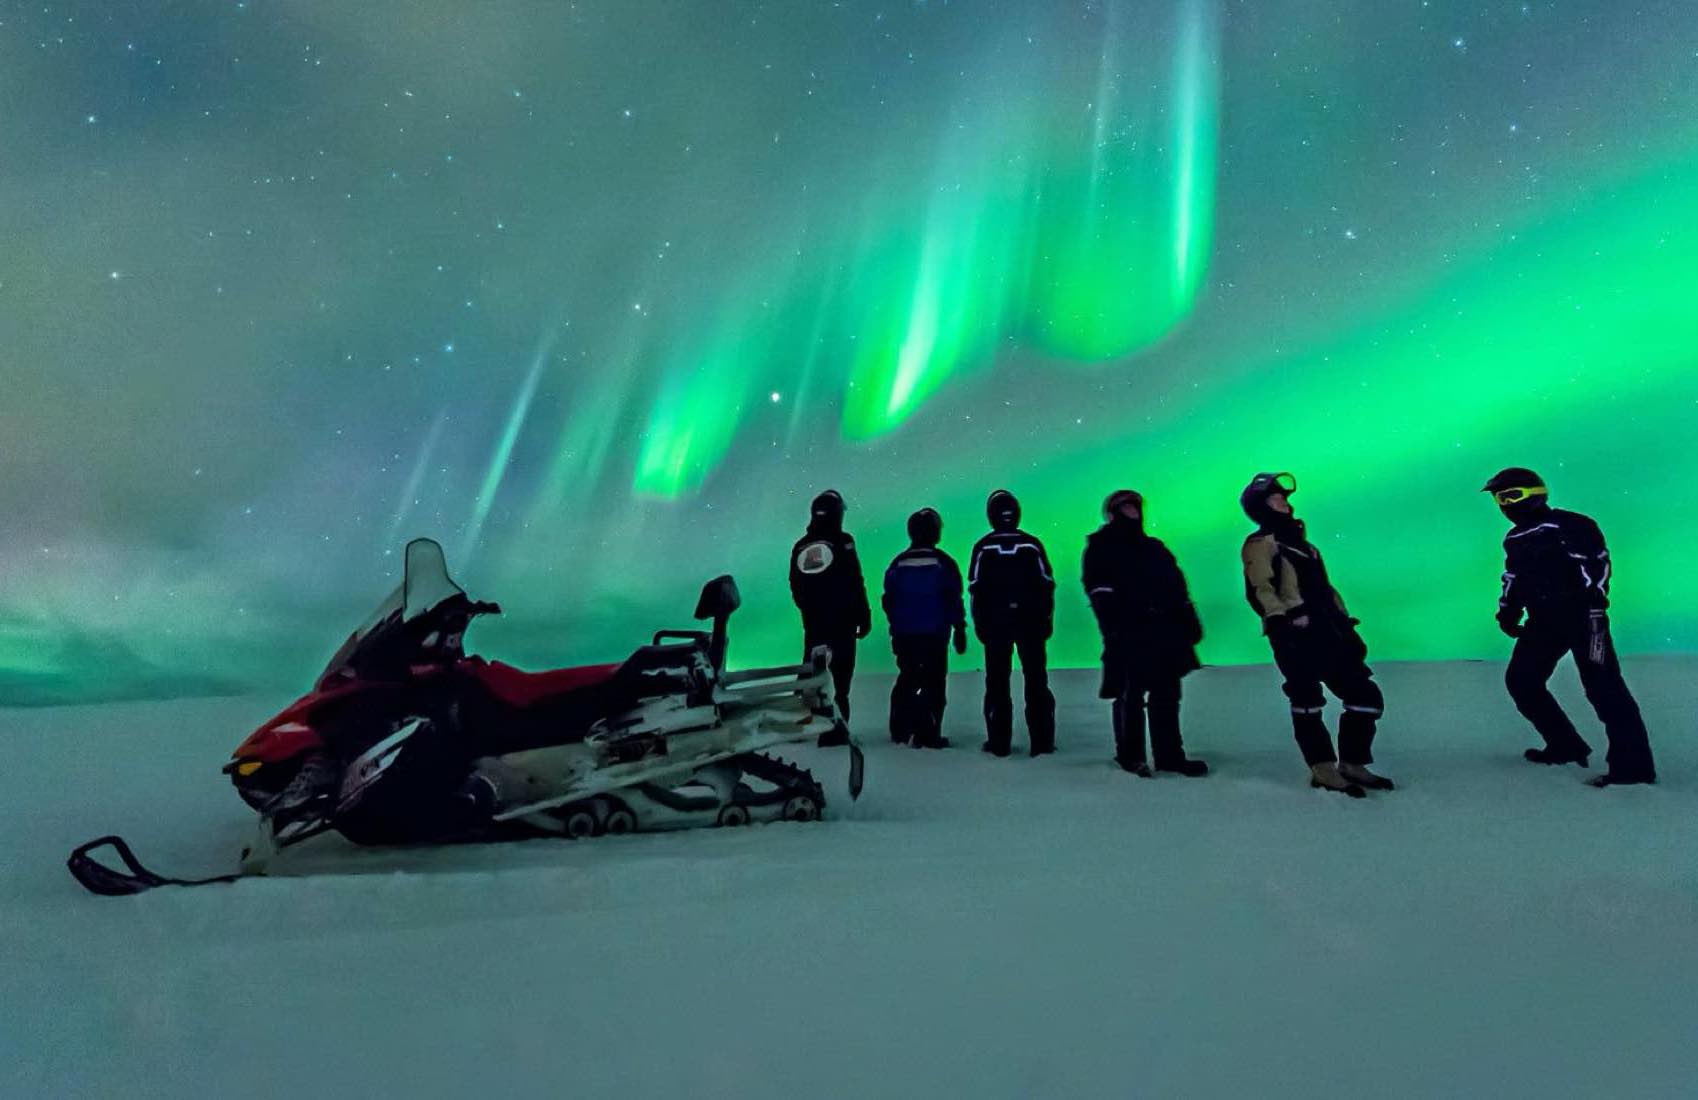 NIGHT SHOW: From September to March you can watch the Norther Lights dancing on the sky over the arctic area of Finnmark in Norway.